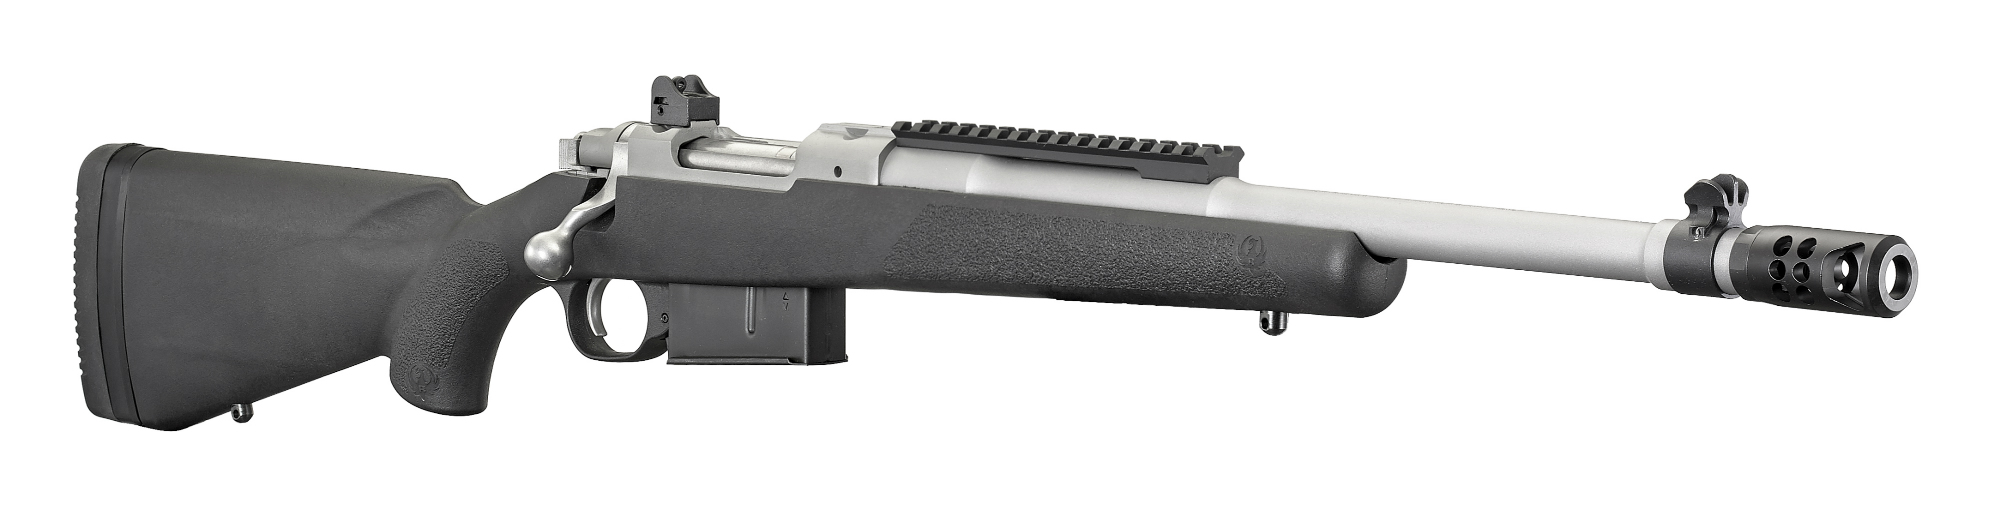 The Scout Rifle in .450 Bushmaster features a Ruger Precision Rifle Hybrid Muzzle Brake